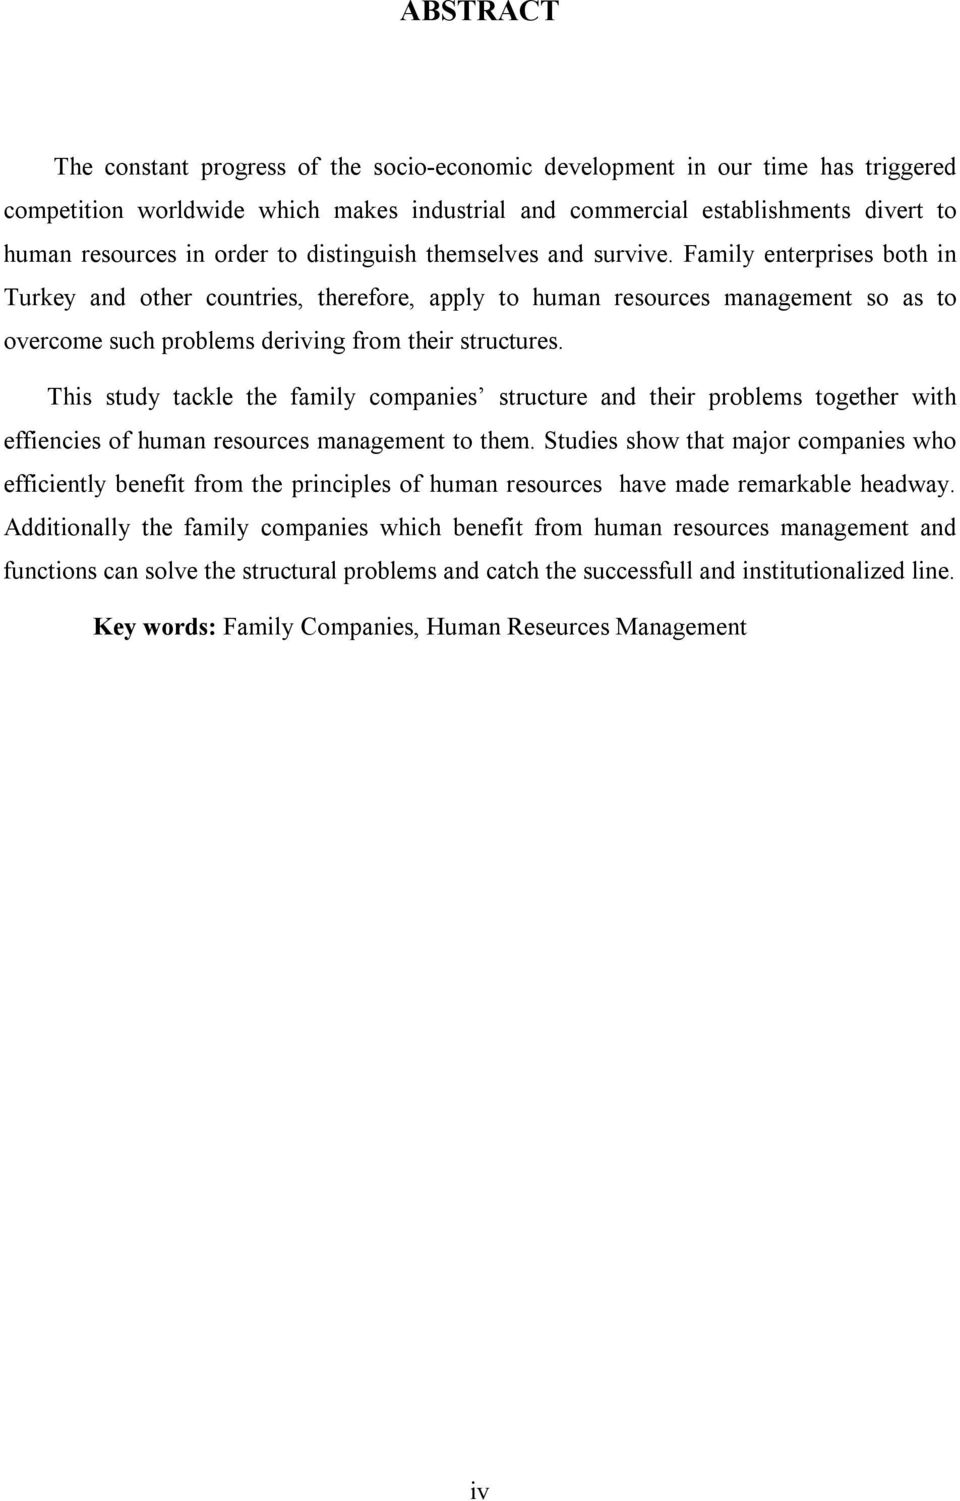 Family enterprises both in Turkey and other countries, therefore, apply to human resources management so as to overcome such problems deriving from their structures.